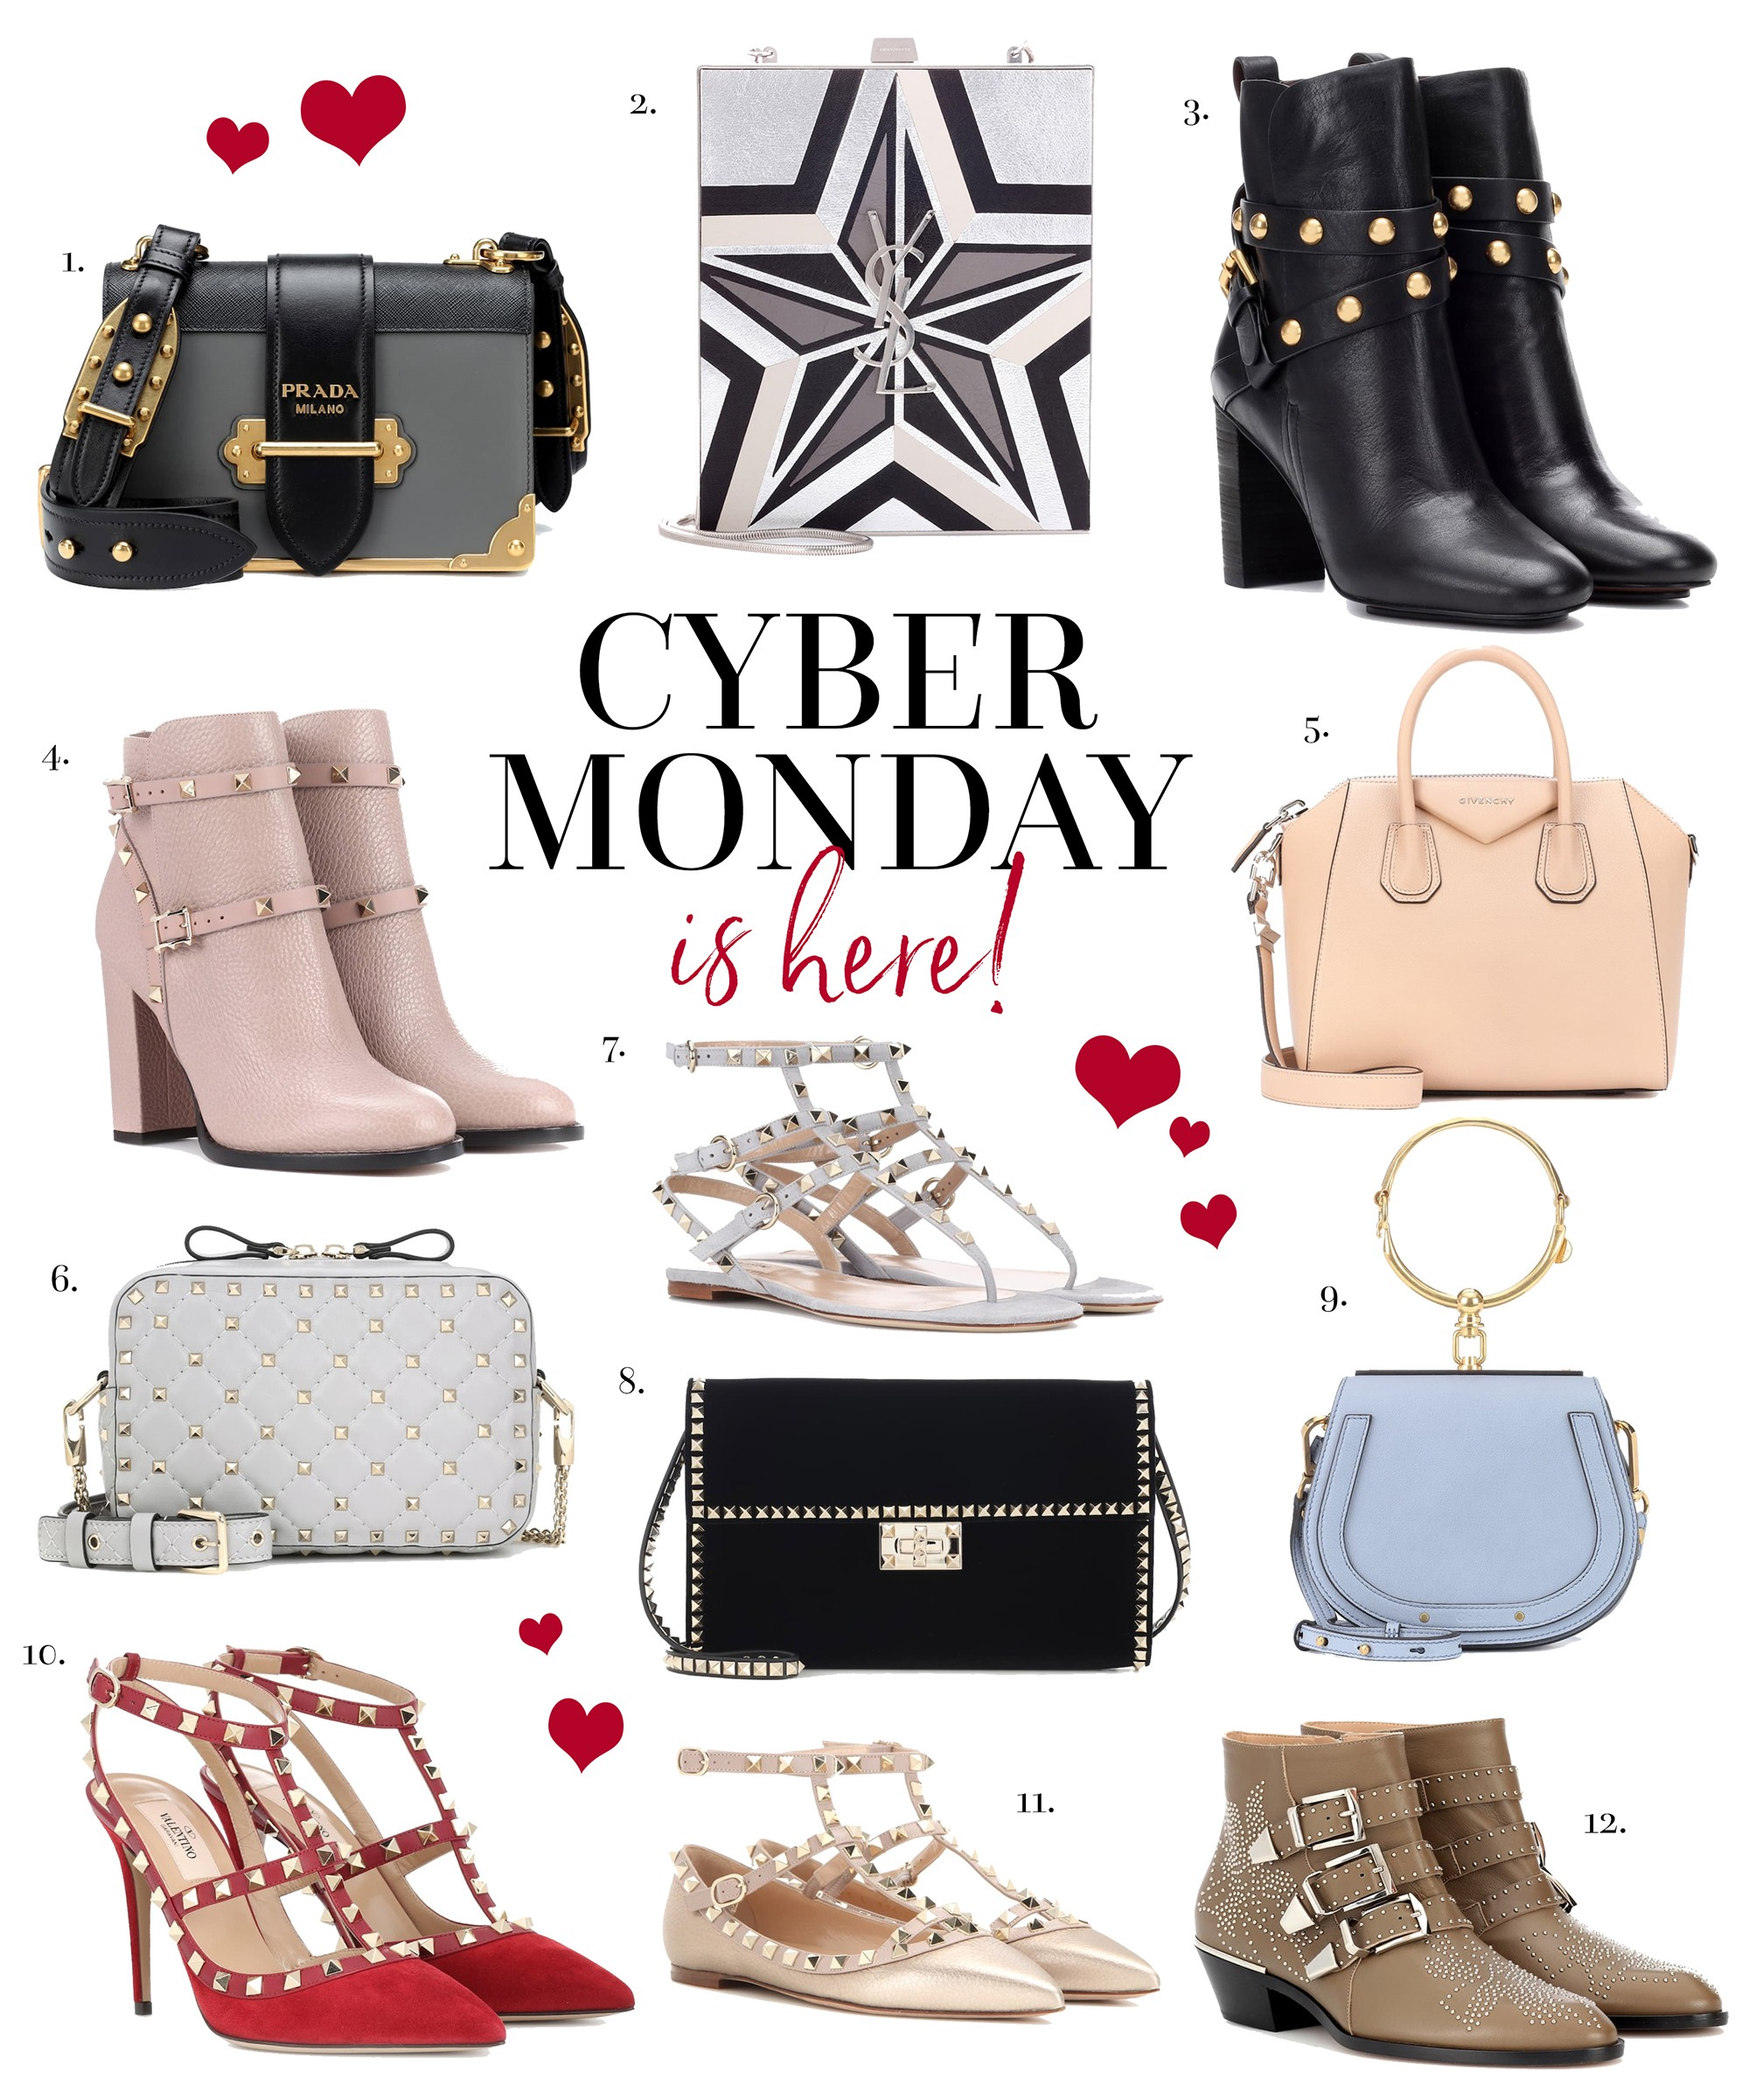 a60e6f40def7 Cyber Monday is here! - Chase Amie